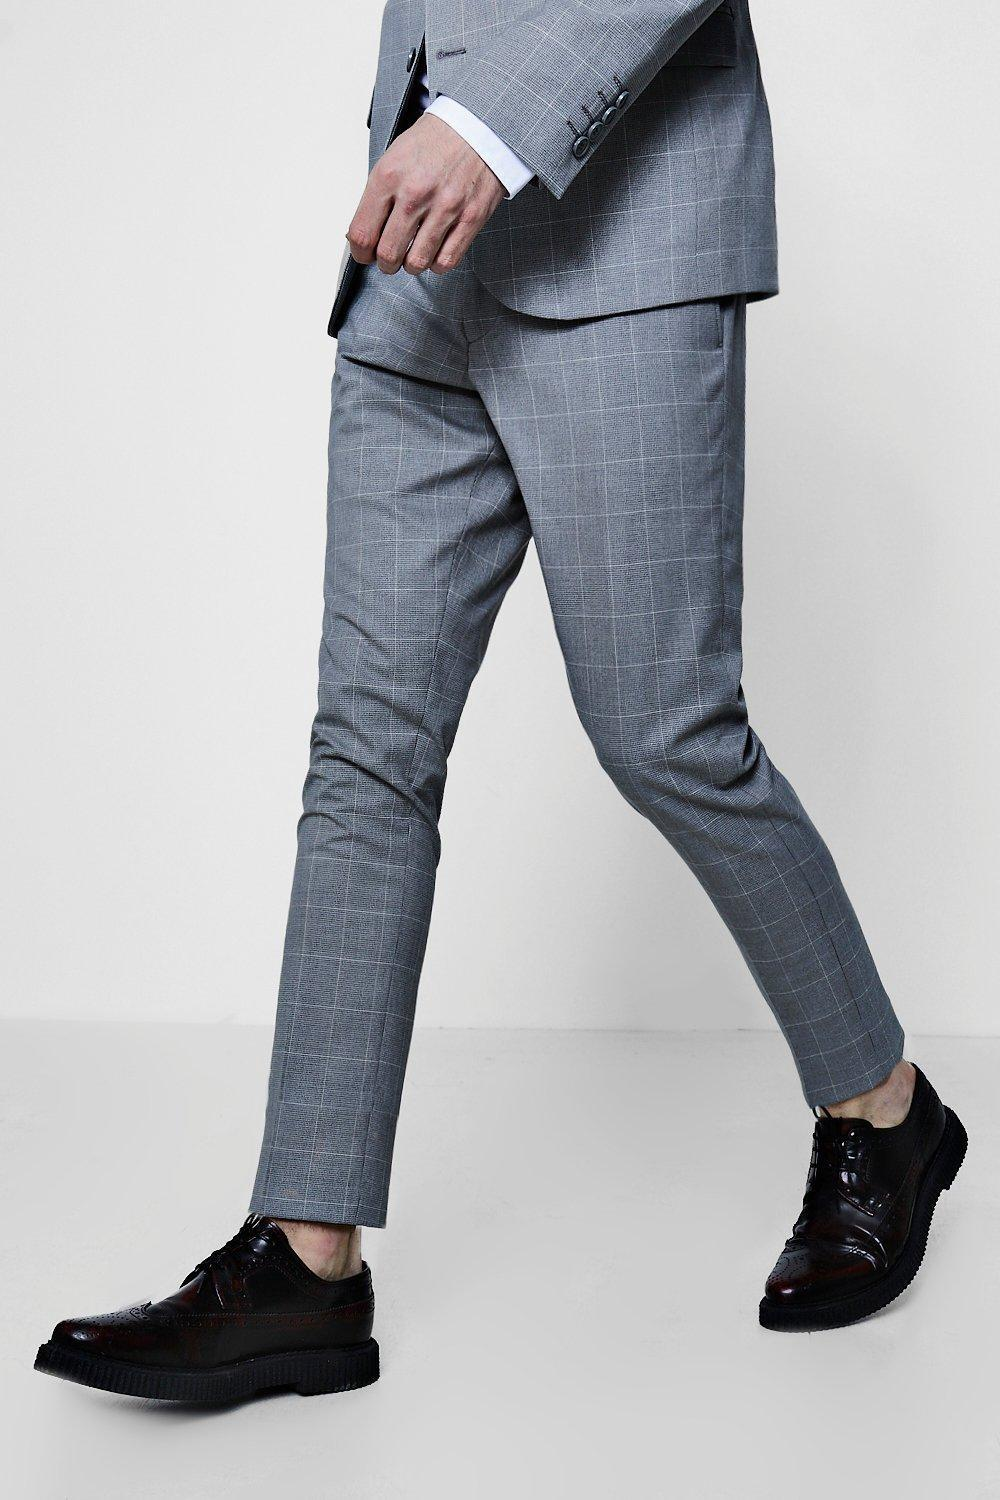 014acacdc242 Lyst - Boohoo Window Pane Check Skinny Fit Suit Trouser in Gray for Men